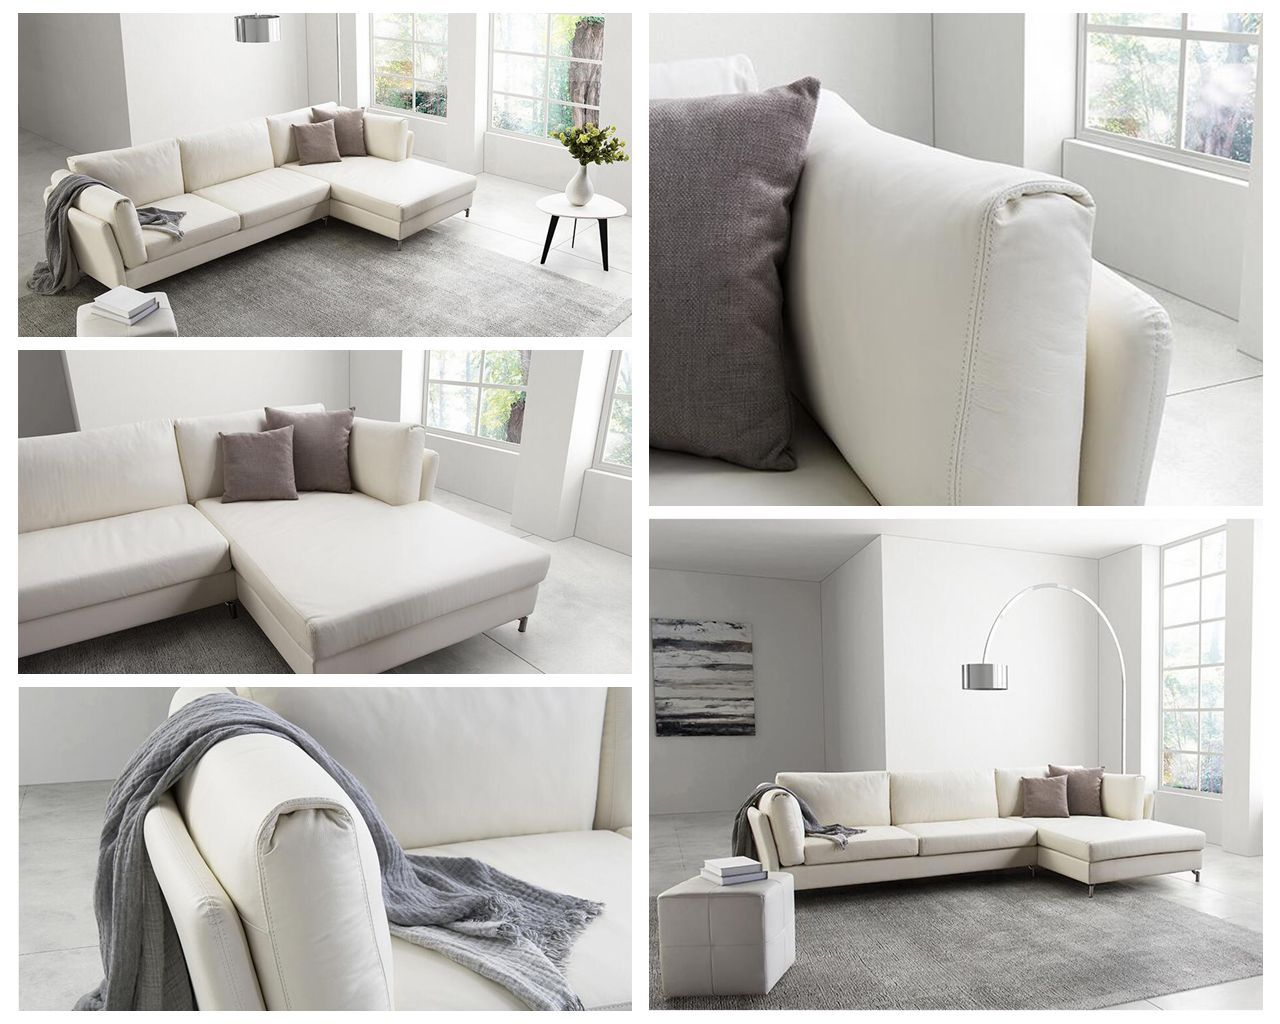 Sofa Upholstery Oman For Out Of This World Comfort And Style Look No Further Than Our